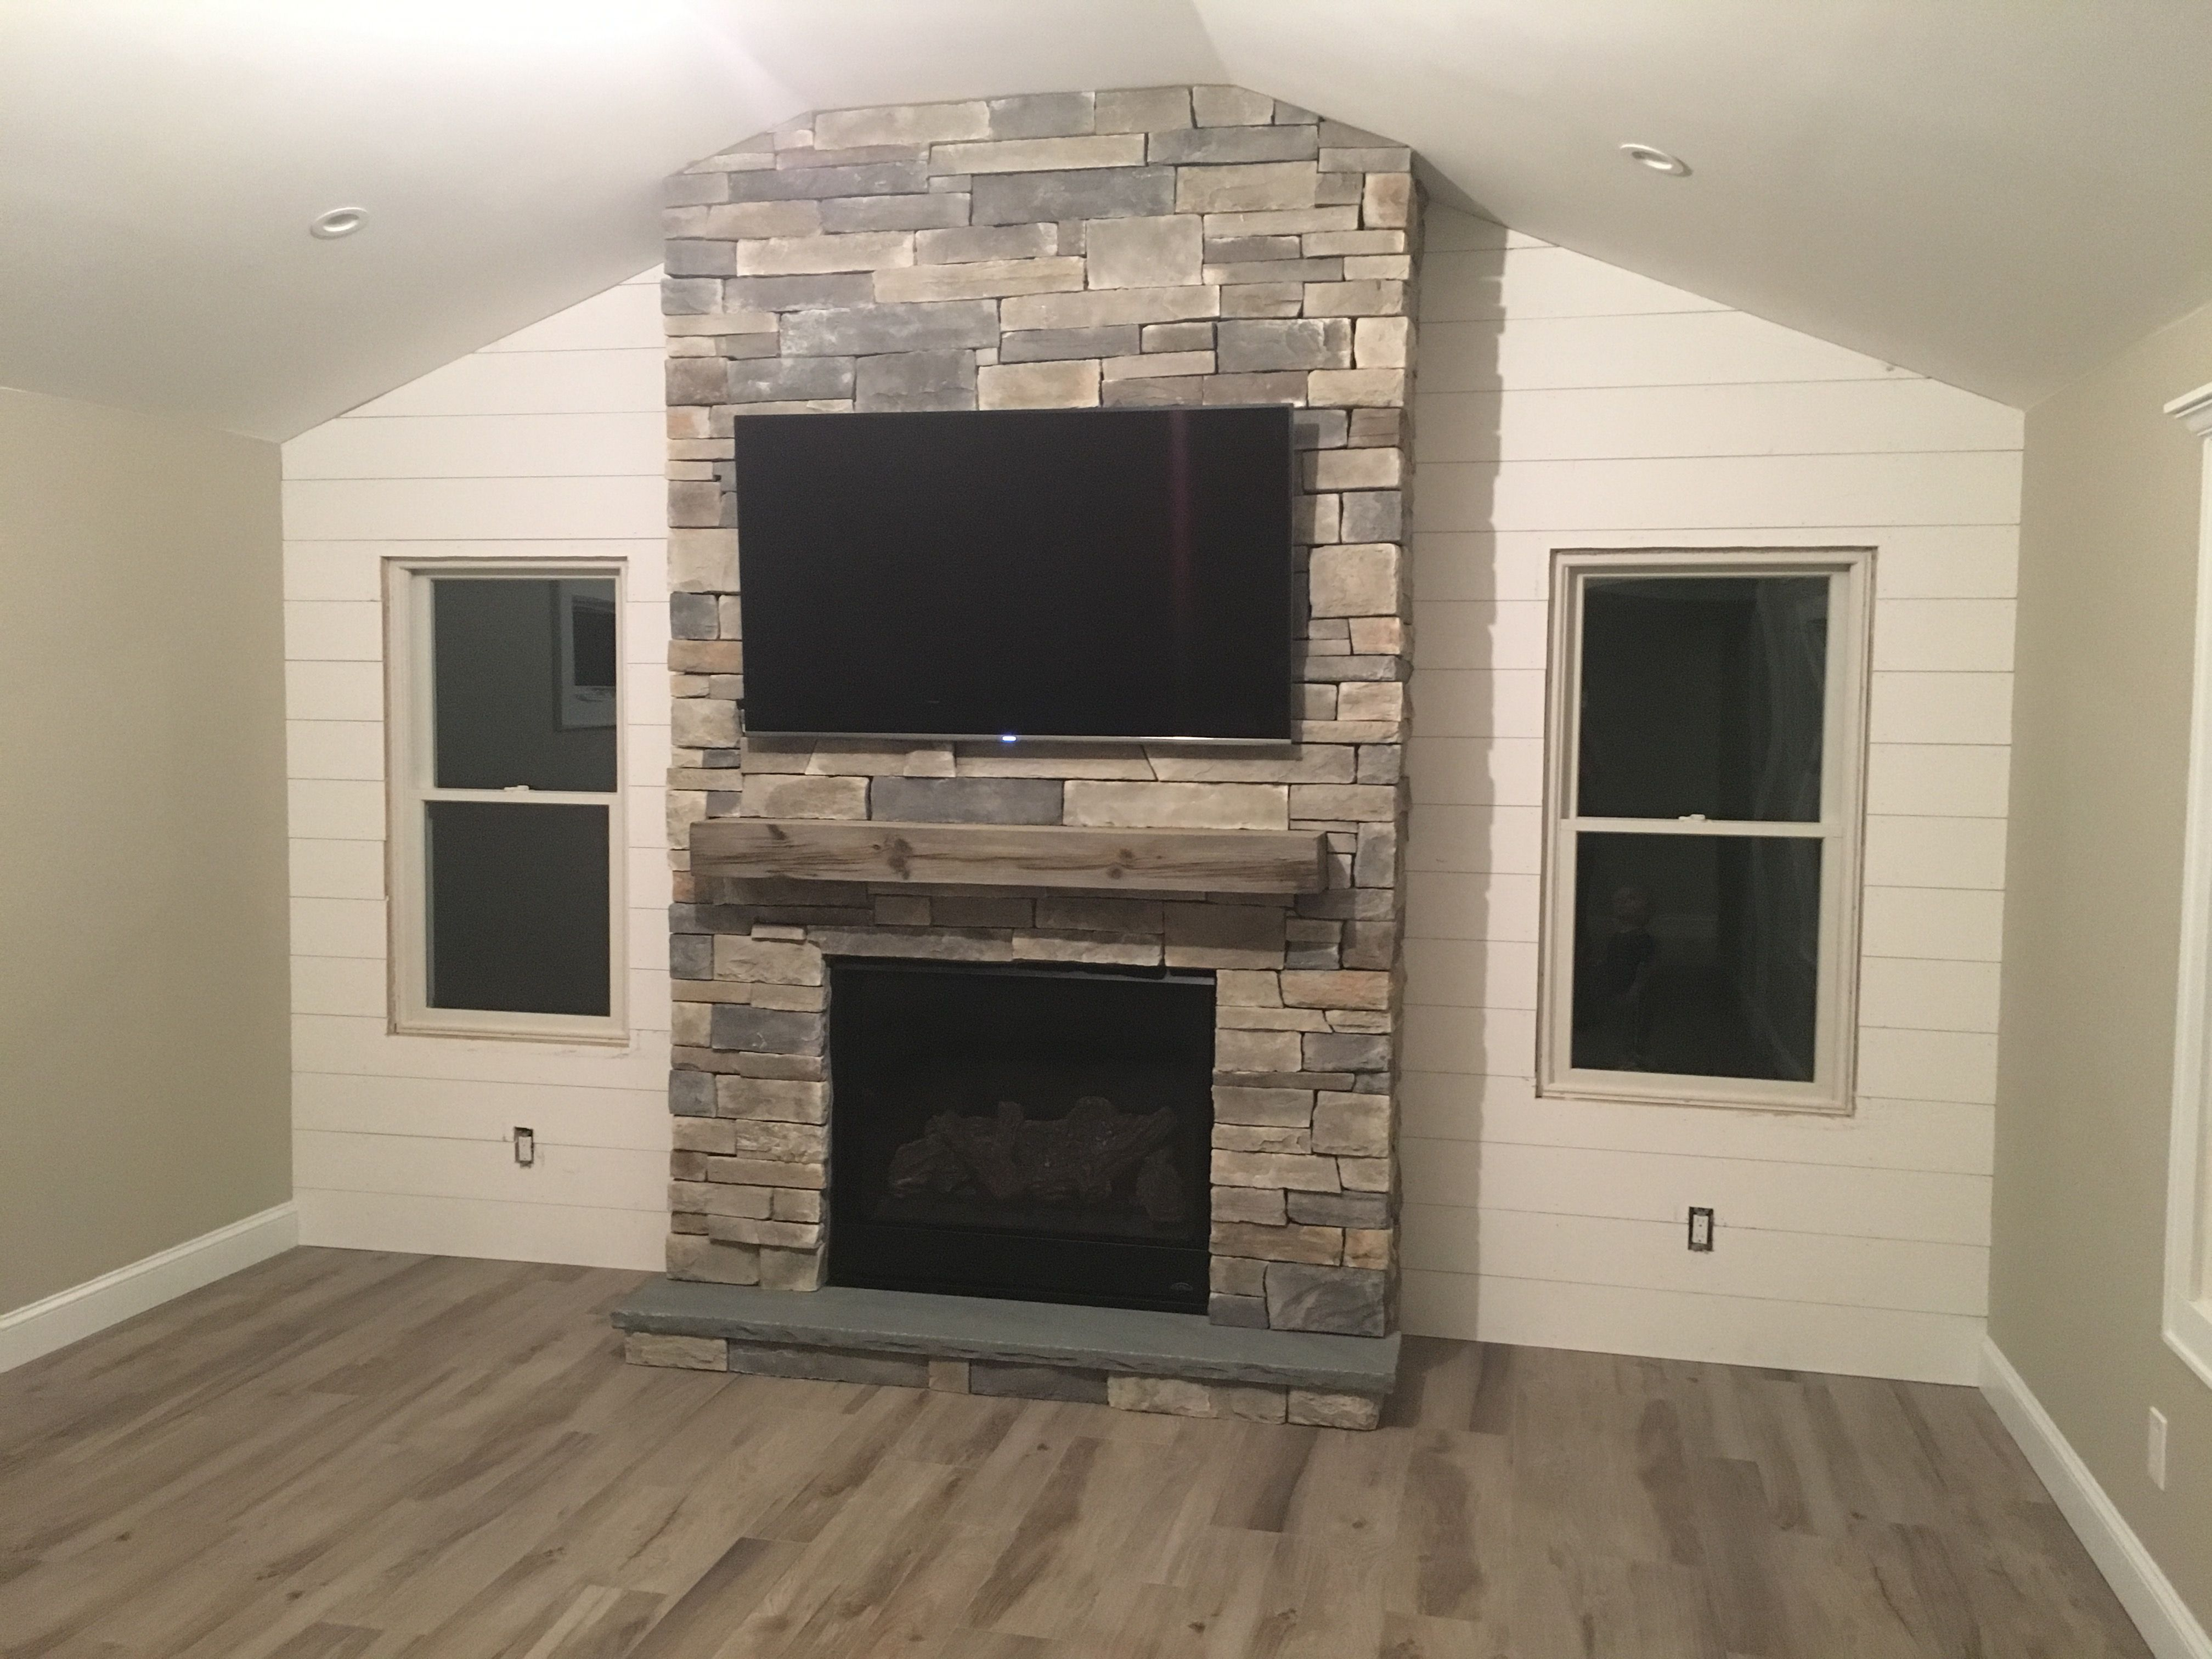 Fireplace with Magrahearth mantel and shiplap wall  Fireplace  Ship lap walls Deck decorating